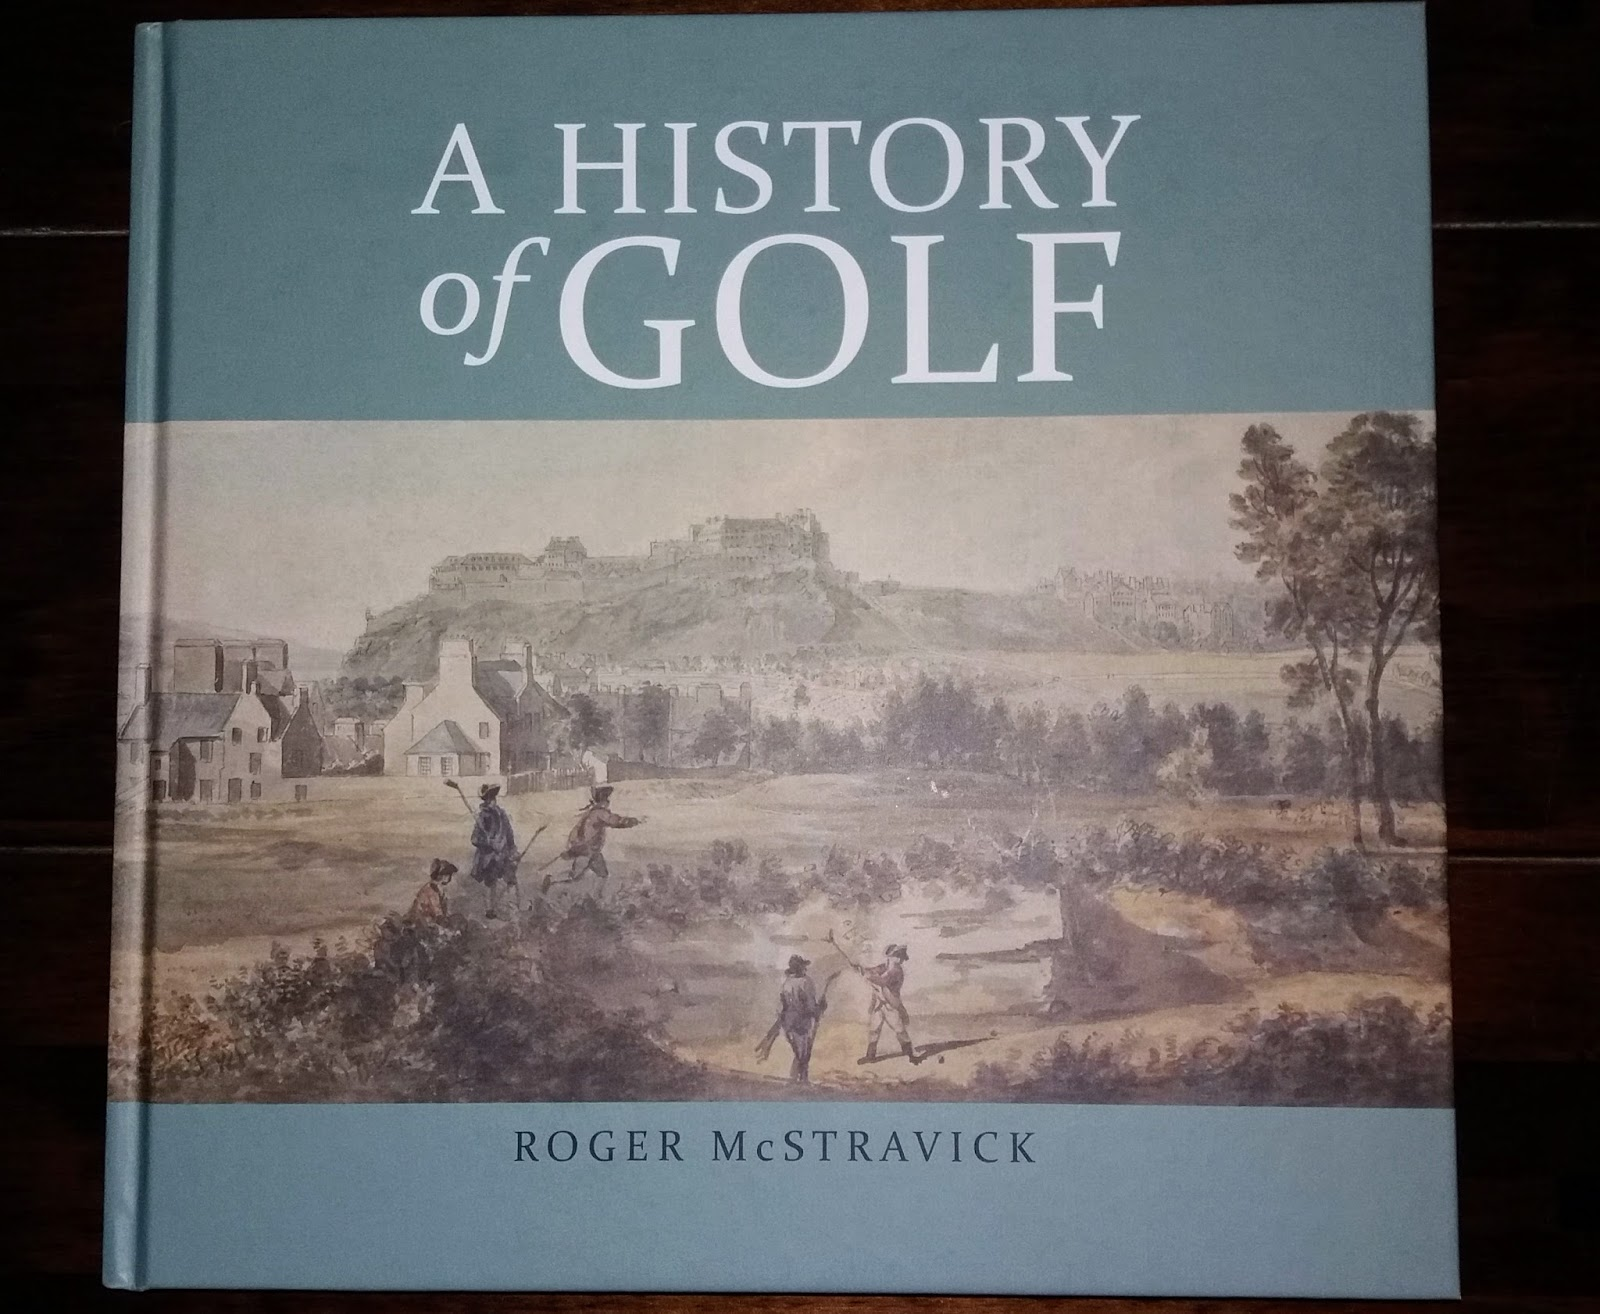 history of golf Also, you can reach us at edmunds live advice just call 1-855-782-4711, mon-fri 8am to 5pm.